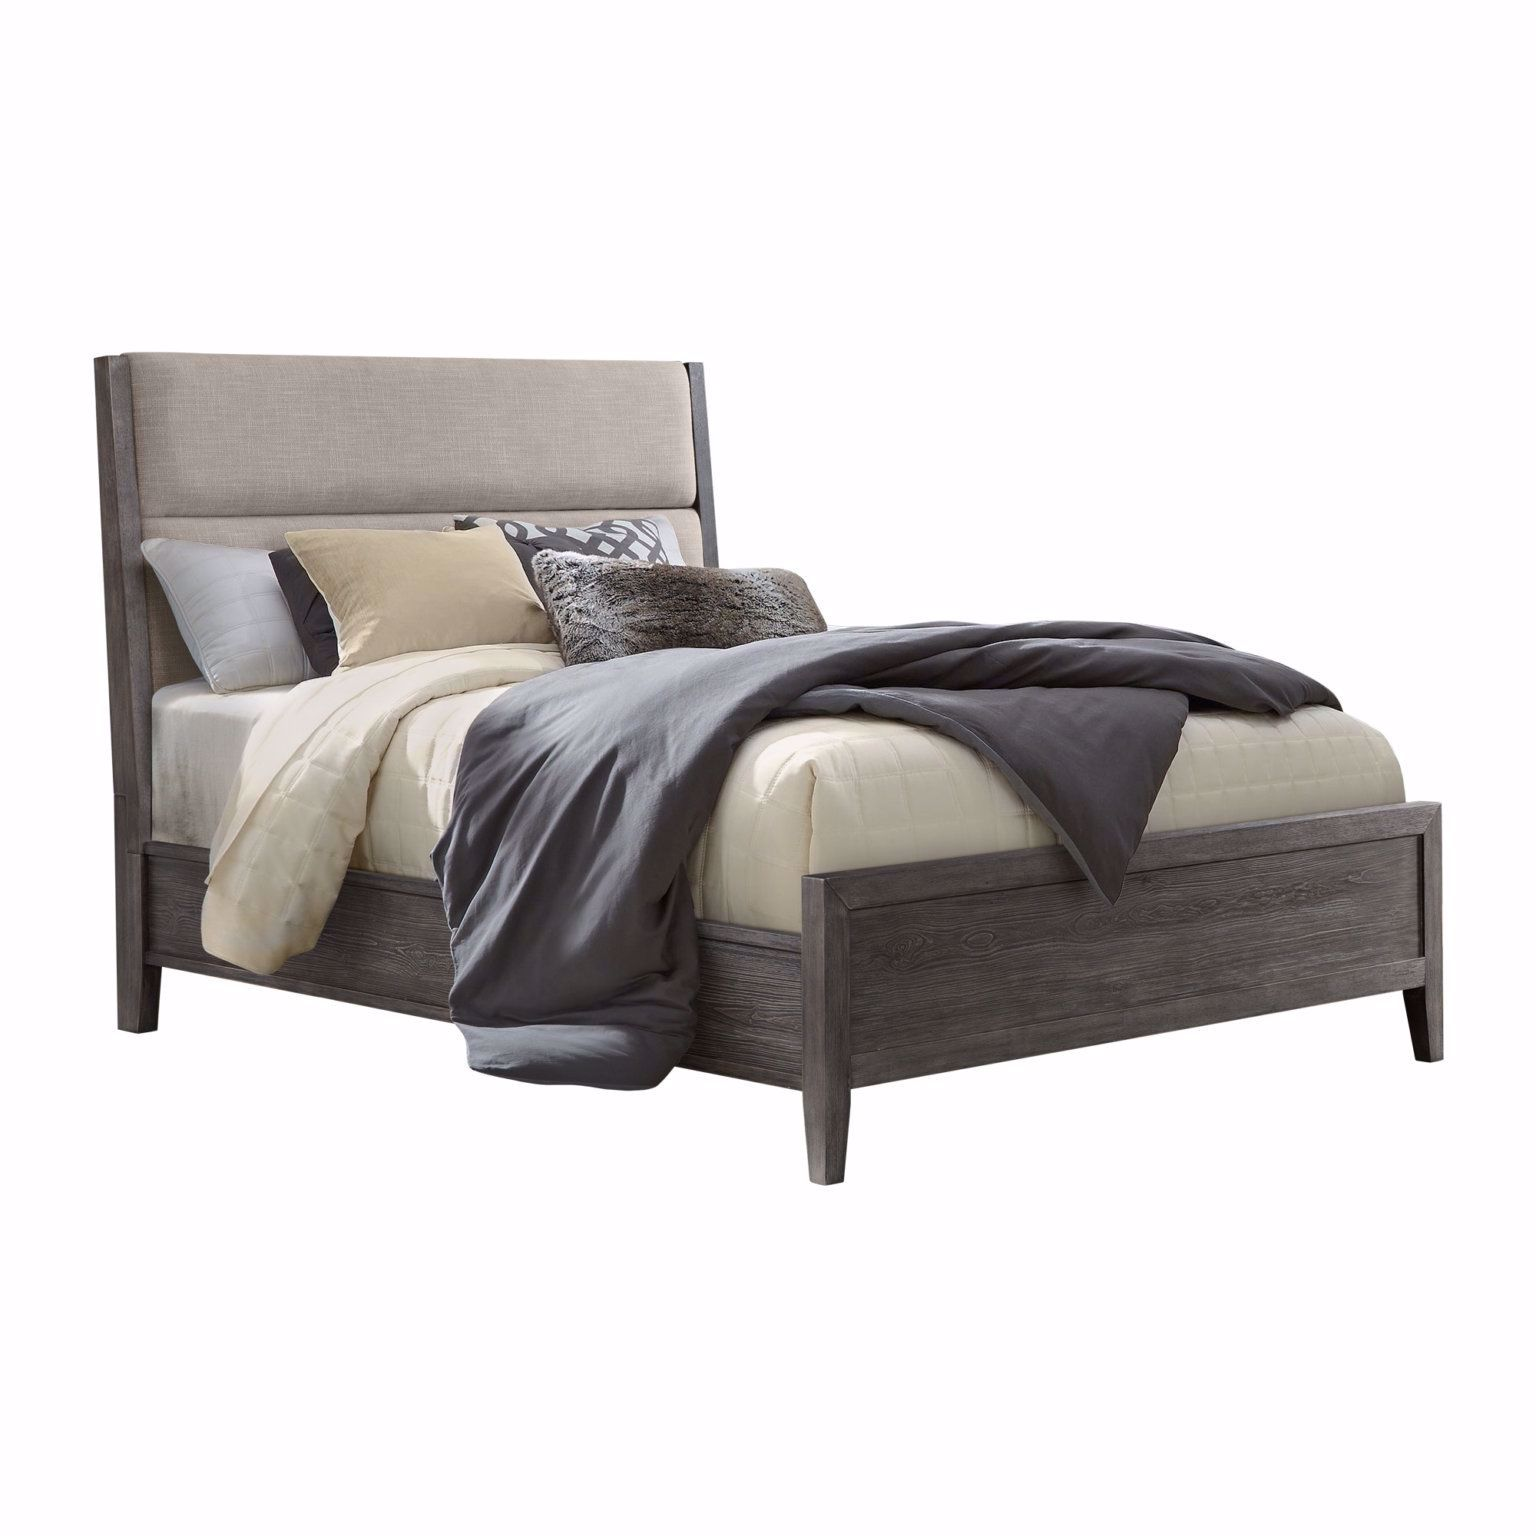 Picture of Portia King Bedroom Set